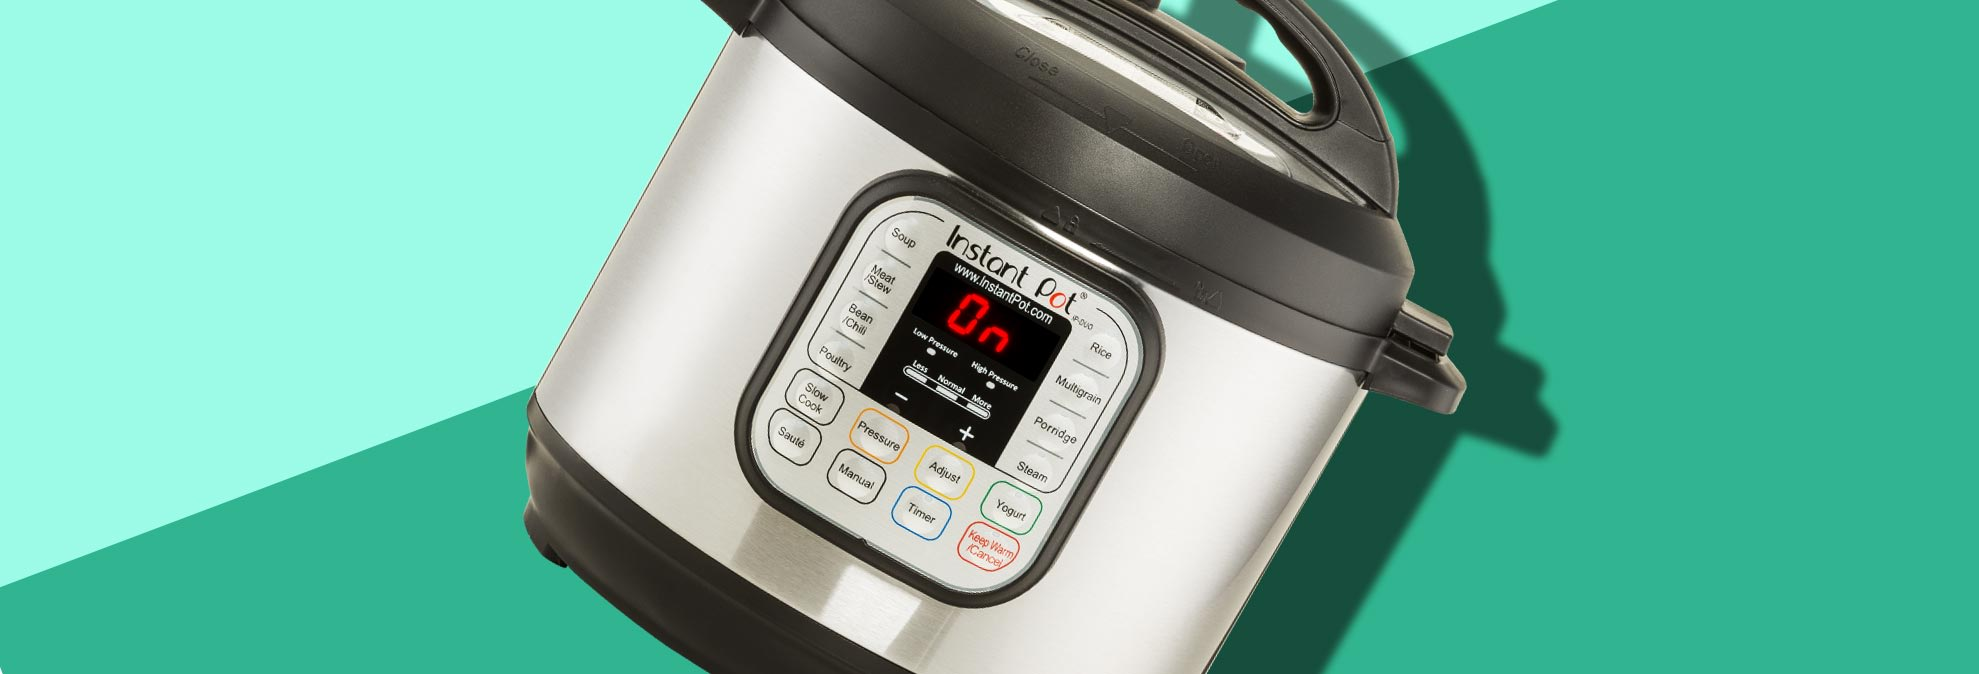 Can the Instant Pot Replace 7 Other Appliances? - Consumer Repors